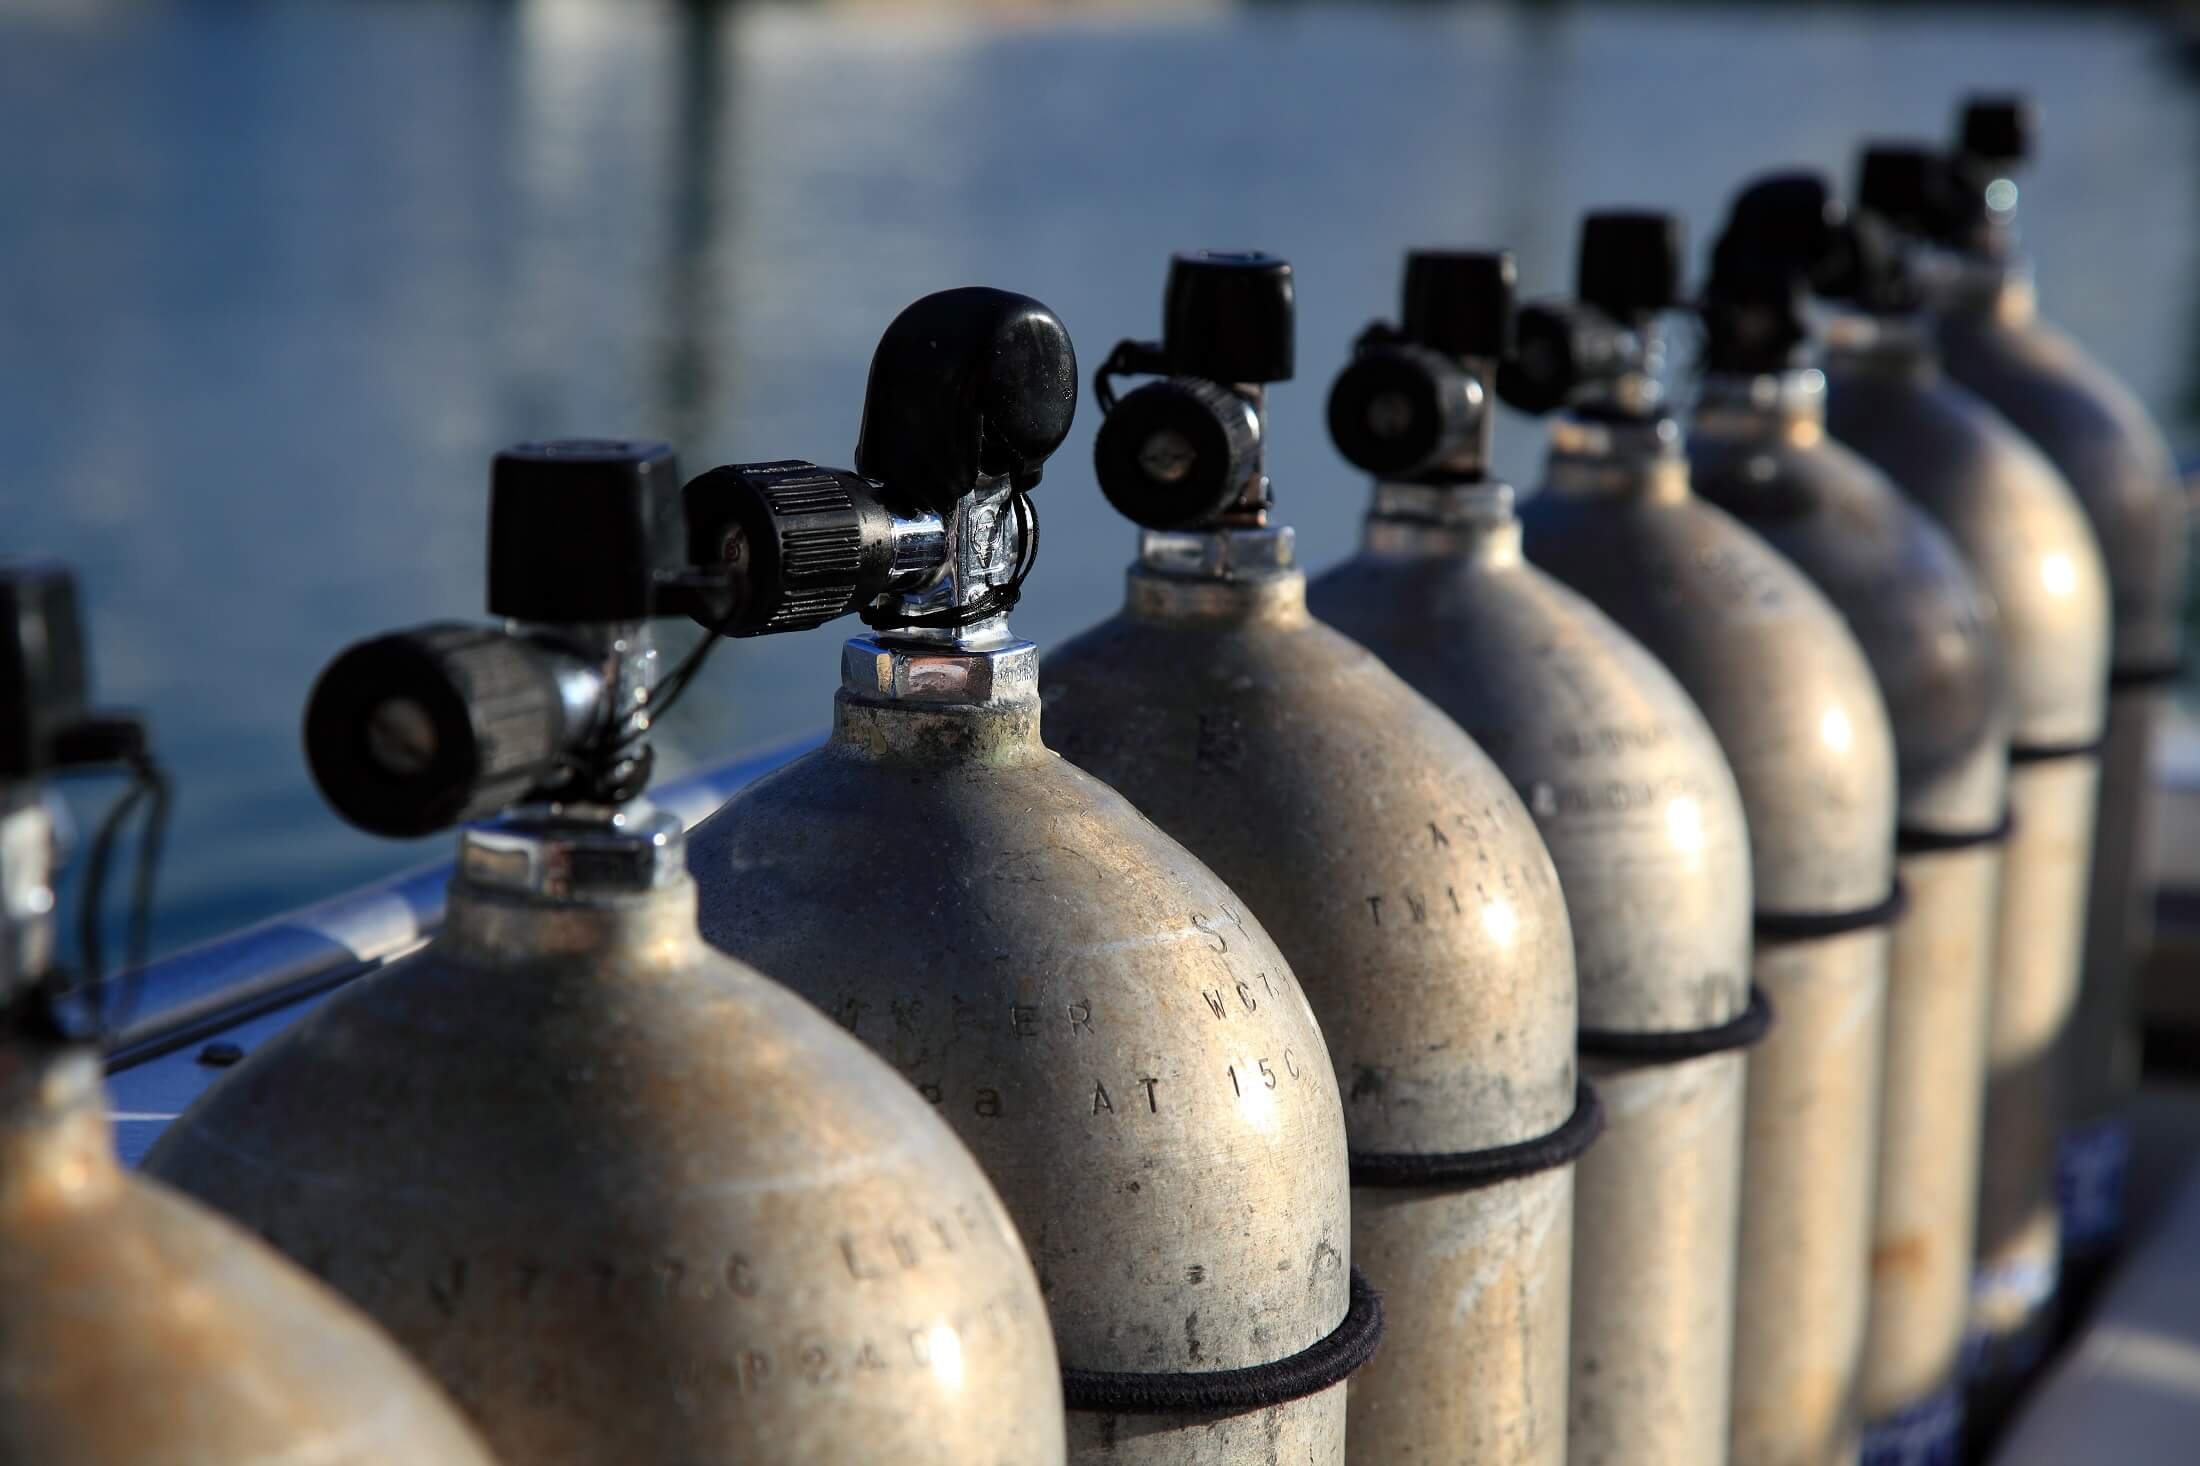 Training staff to handle gas cylinders correctly